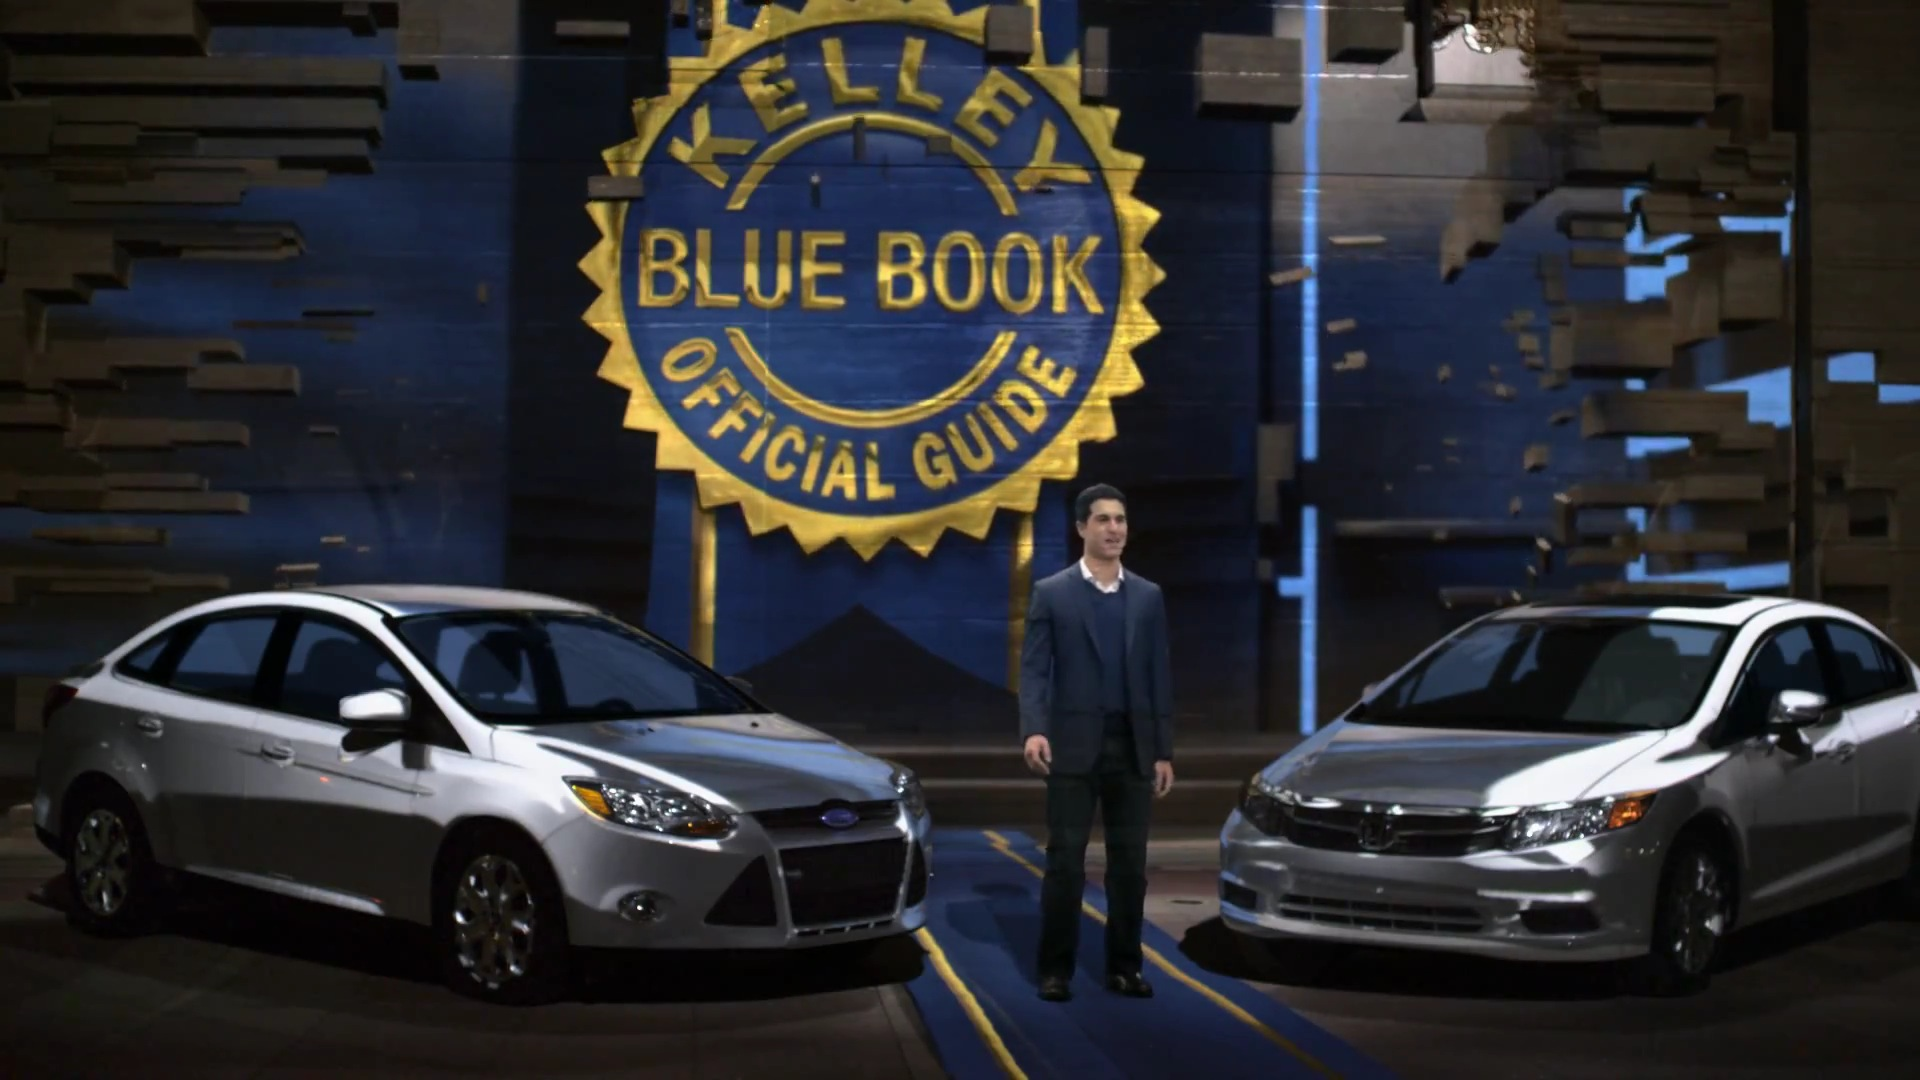 Kelley Blue Book's First Television Commercial - _Projection_ - YouTube4.png